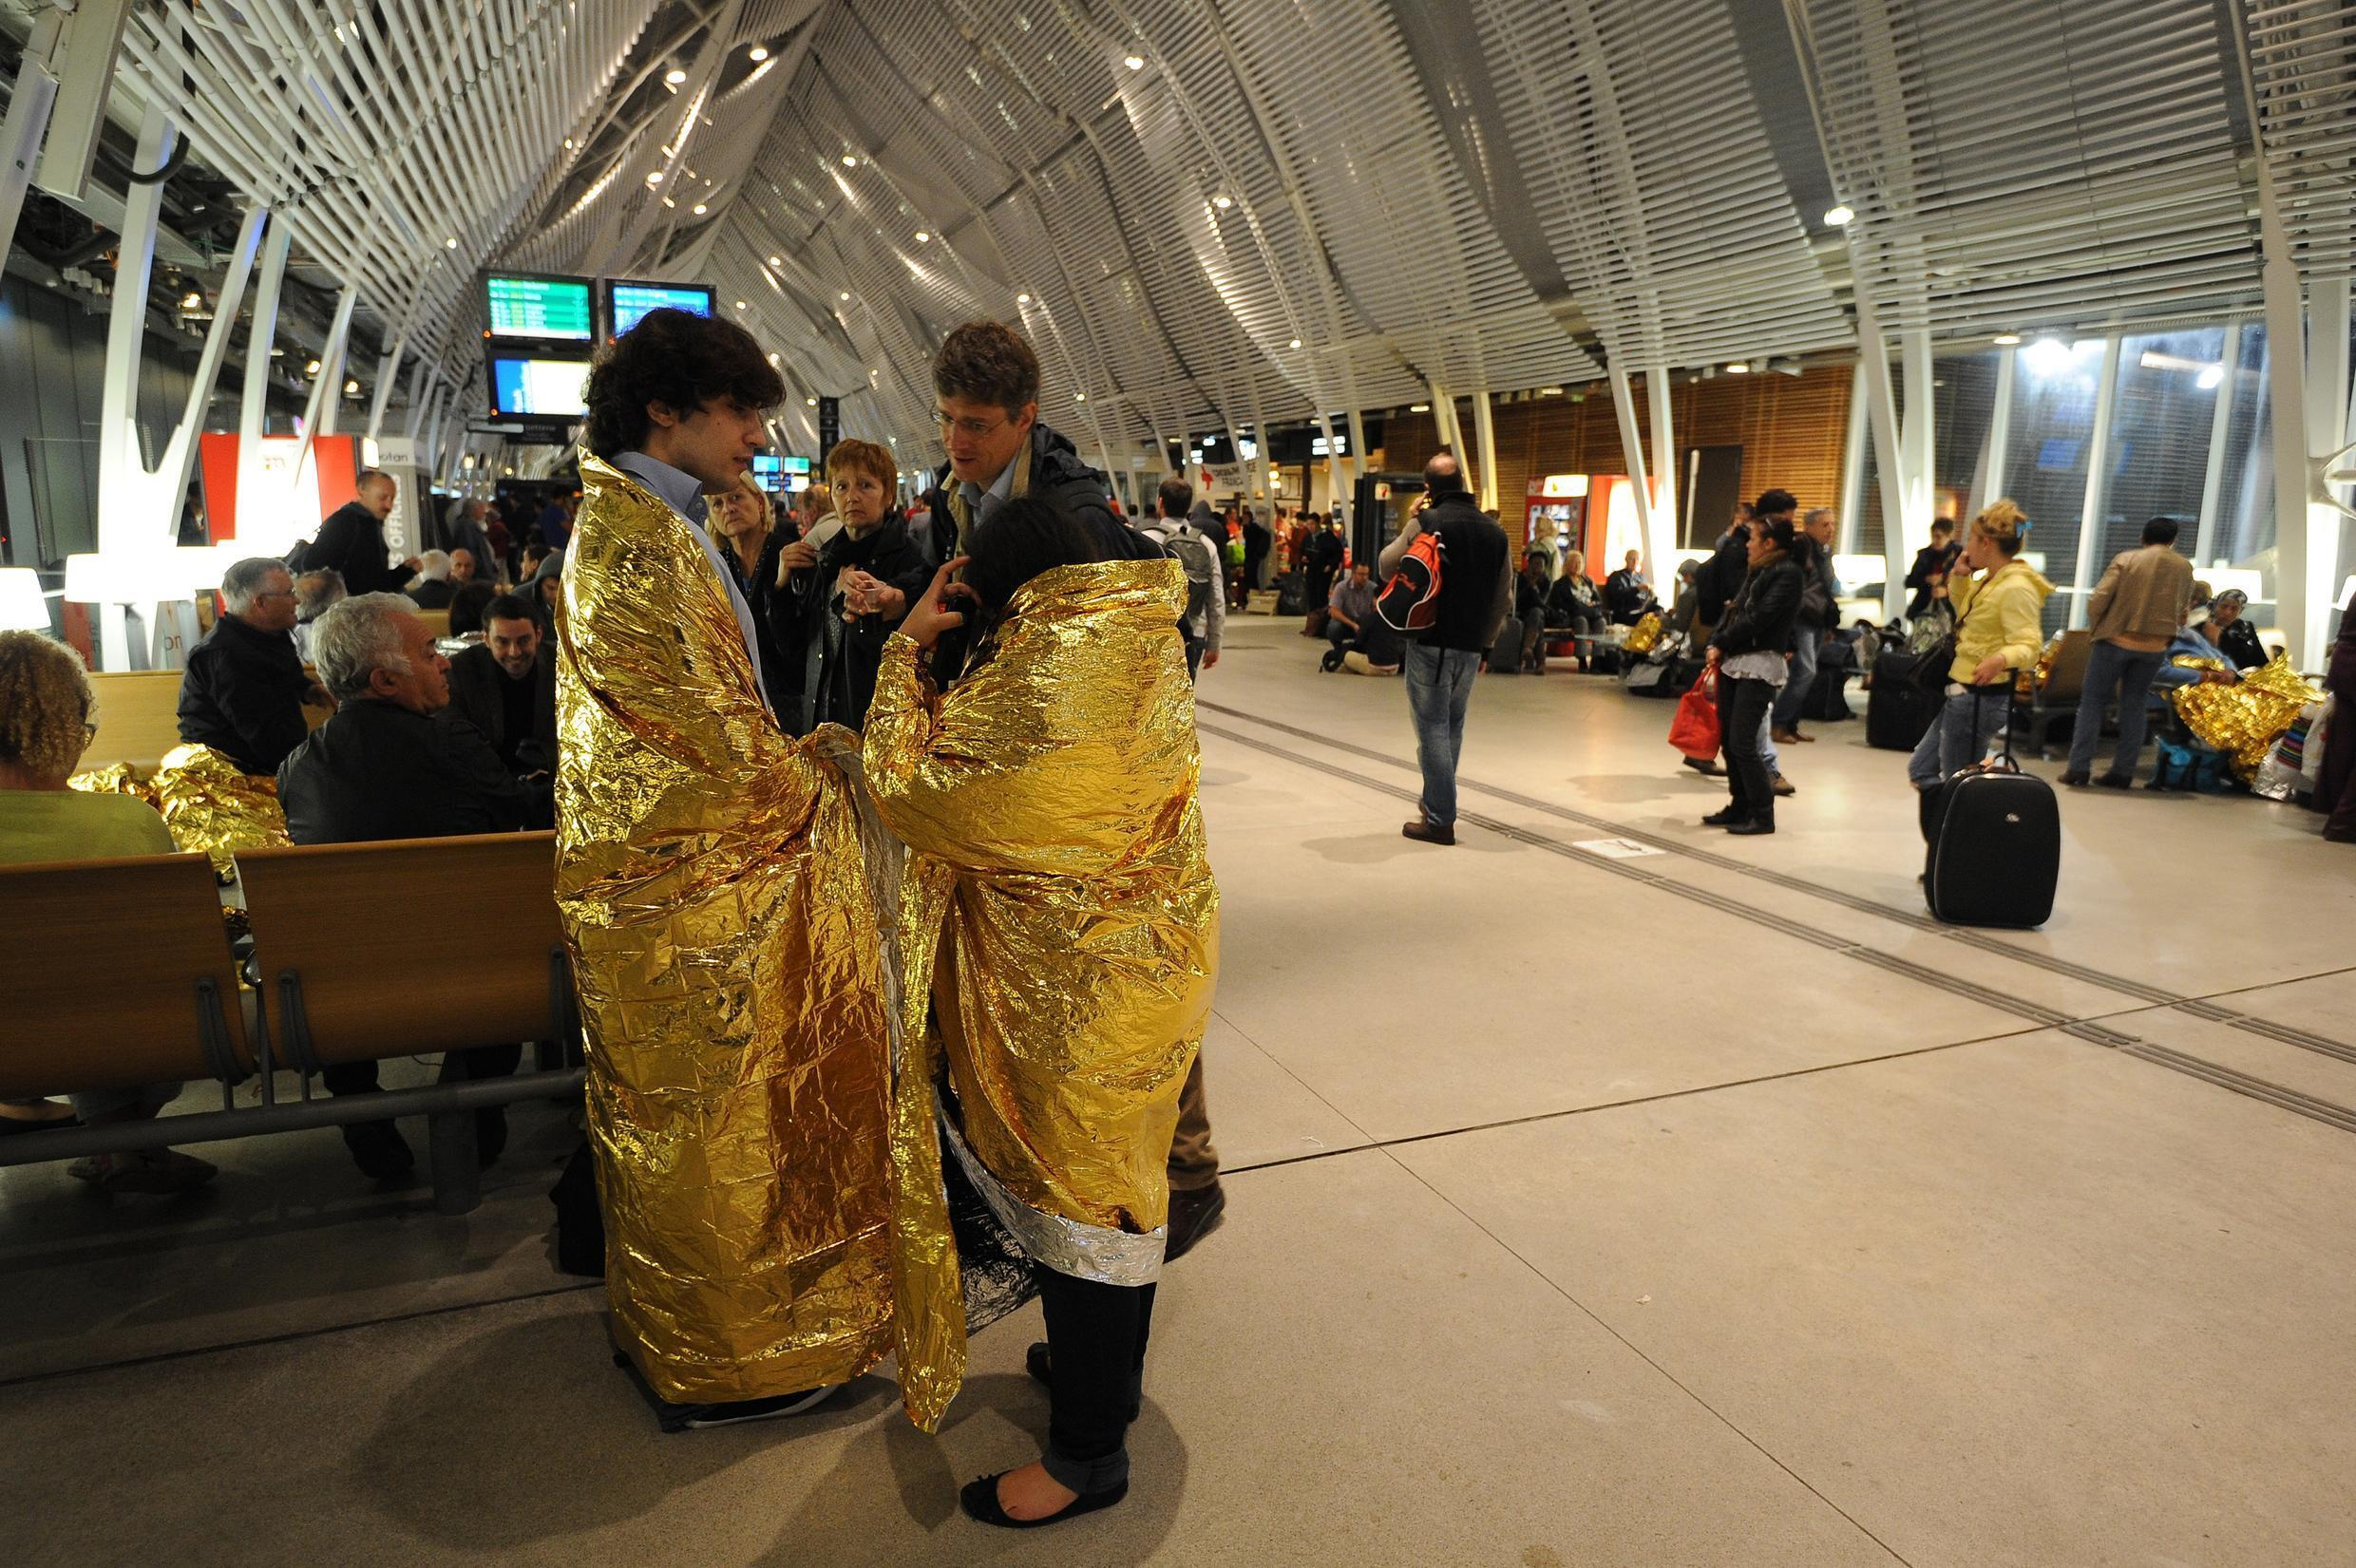 Passengers and local residents take shelter at Montpellier's Saint Roch railway station on Monday night